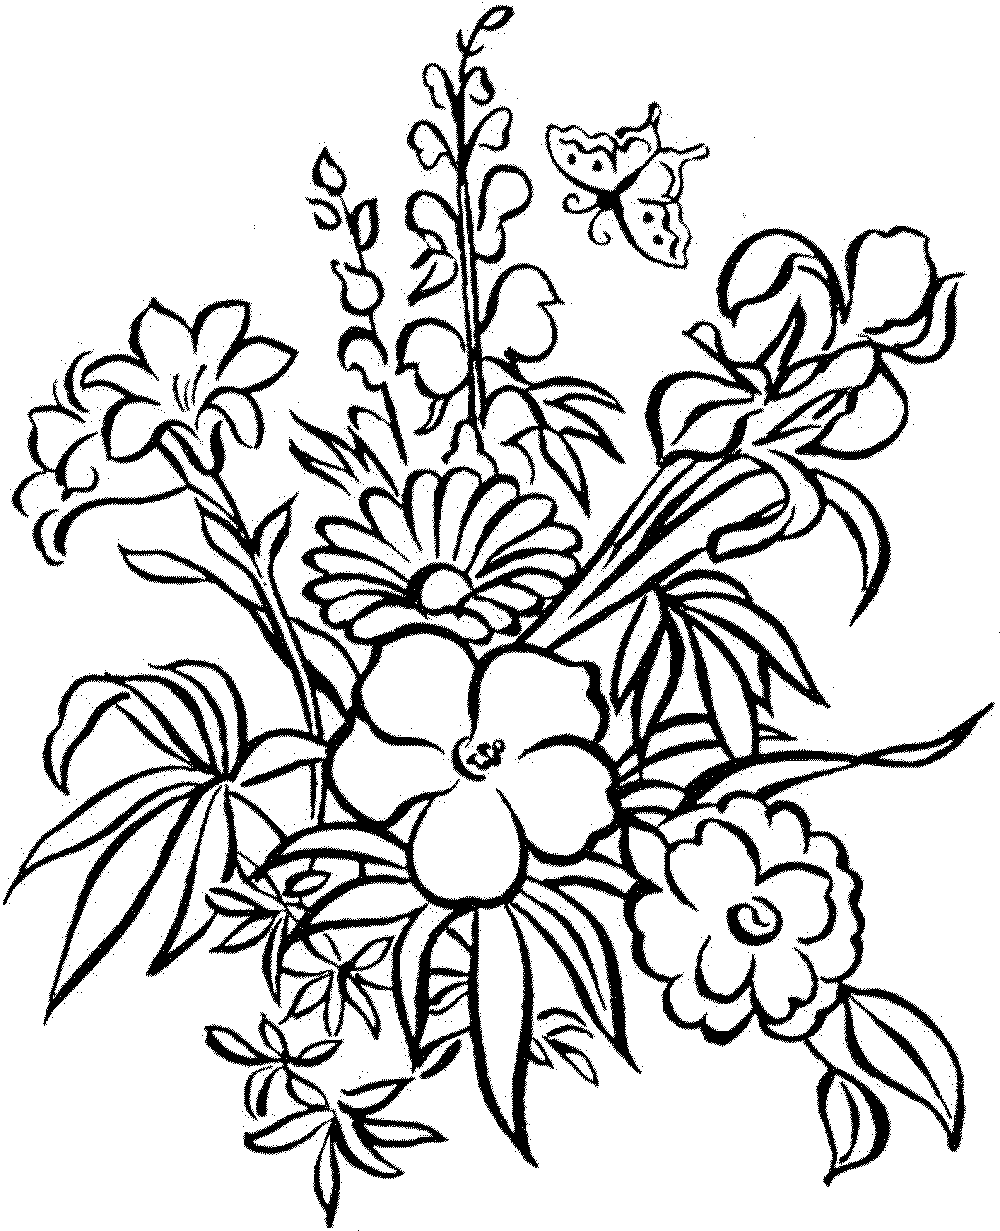 Coloring Pages] Good-looking Flower Coloring Pages For Adults ...